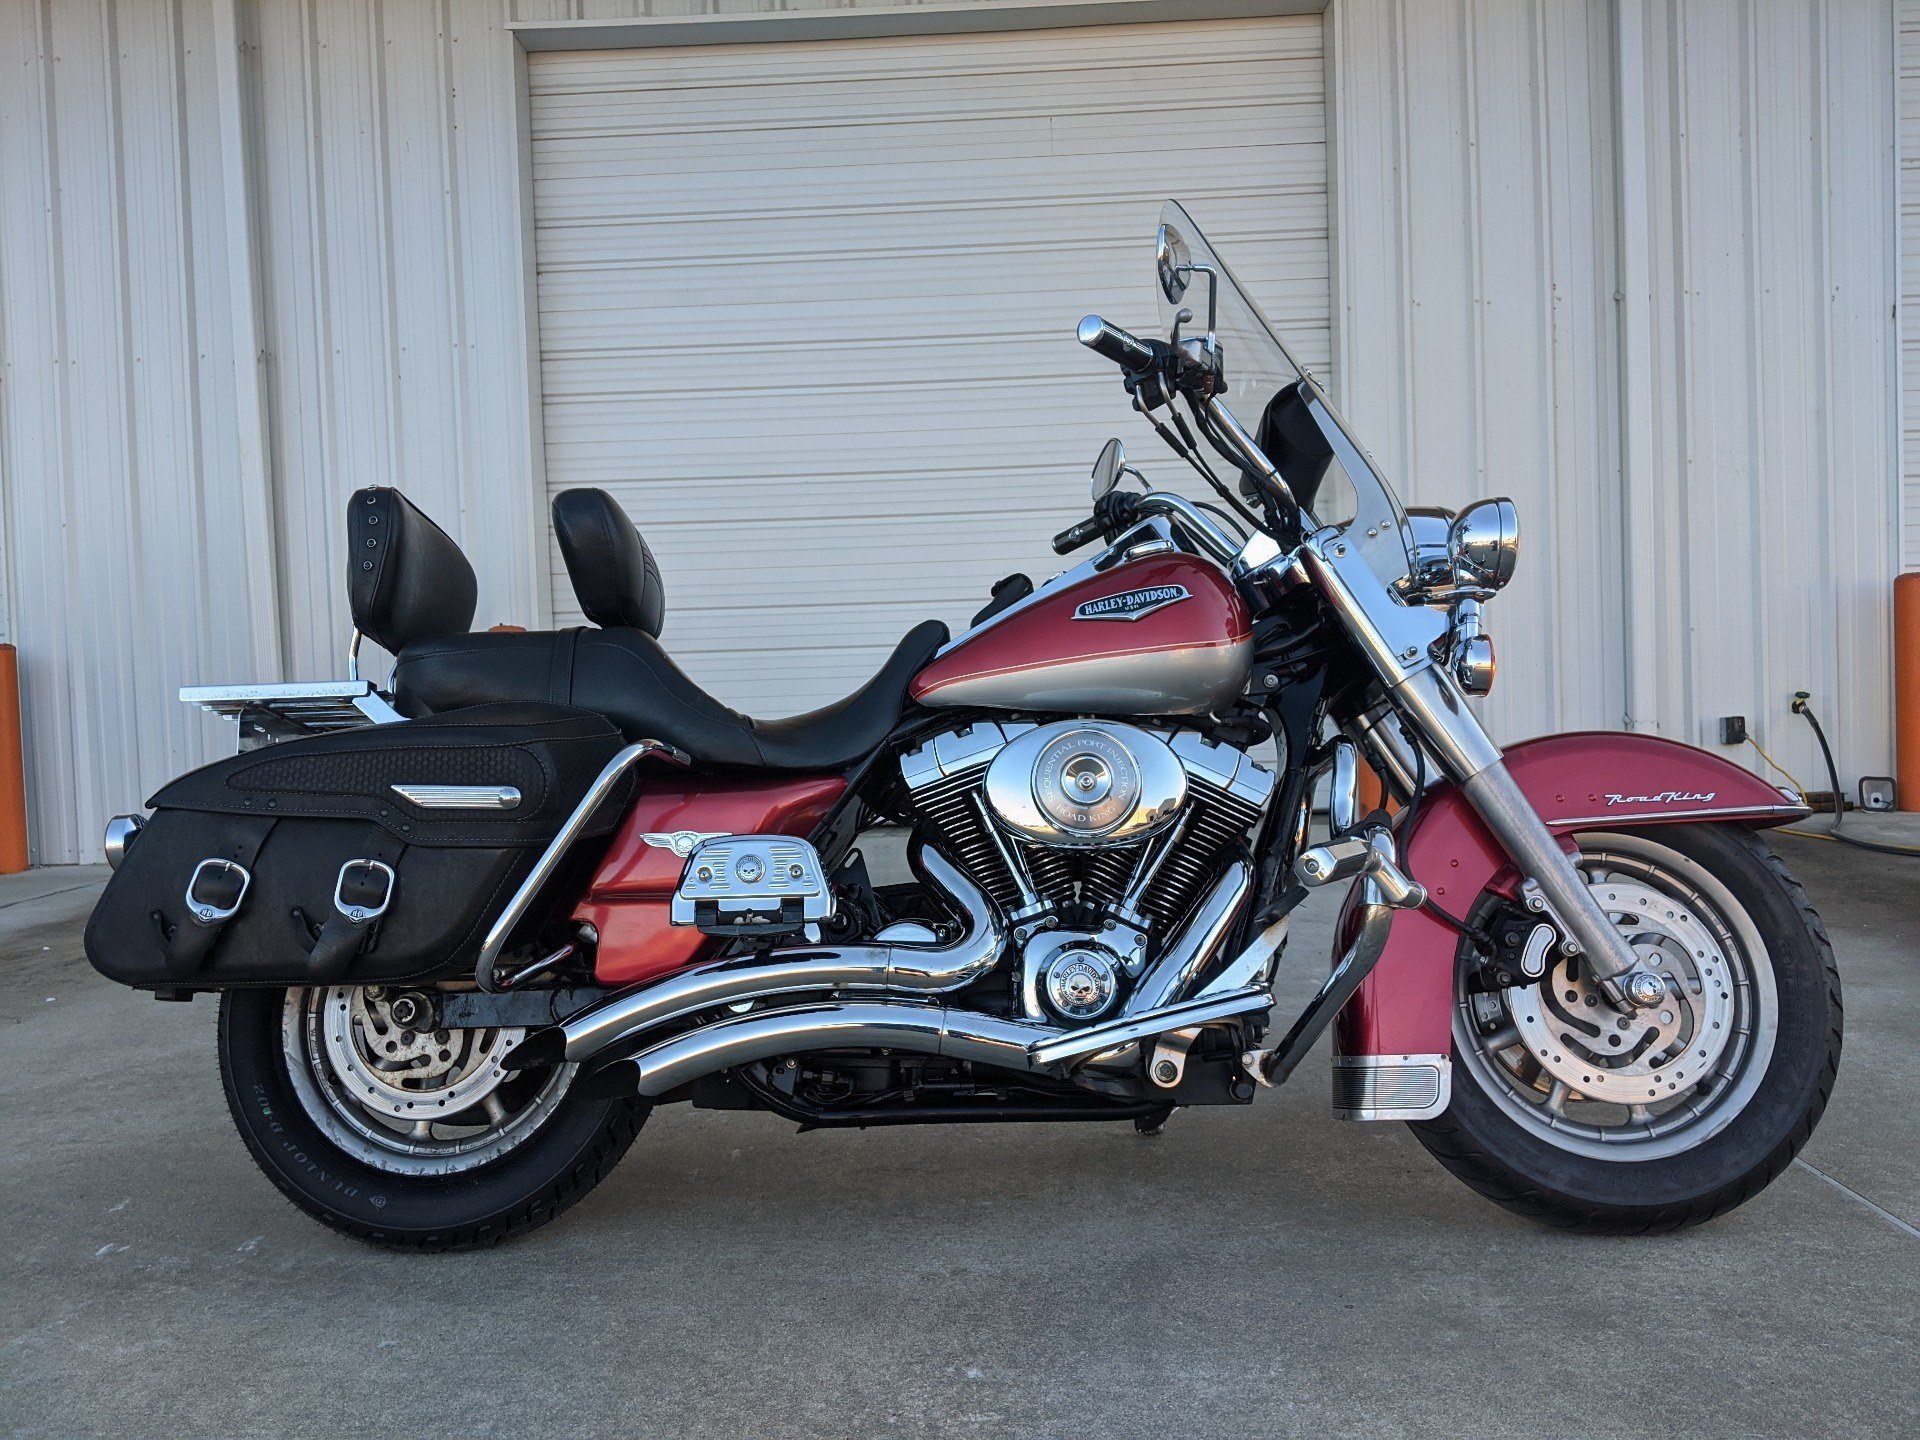 2005 Harley-Davidson FLHR/FLHRI Road King® in Monroe, Louisiana - Photo 1